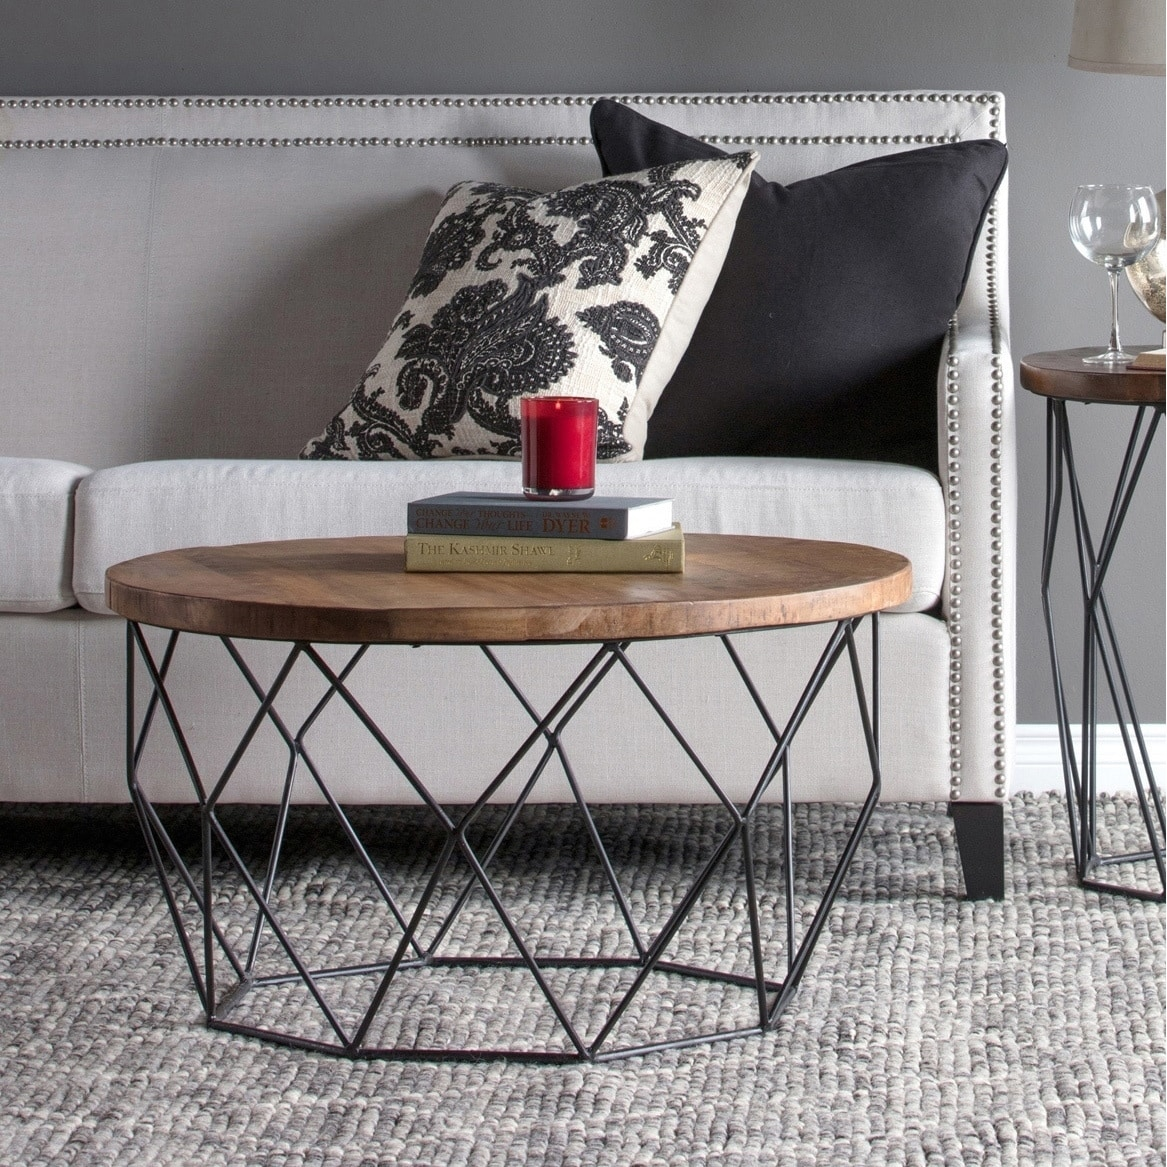 Remarkable Chester Wood And Iron Geometric Round Coffee Table By Kosas Home Andrewgaddart Wooden Chair Designs For Living Room Andrewgaddartcom